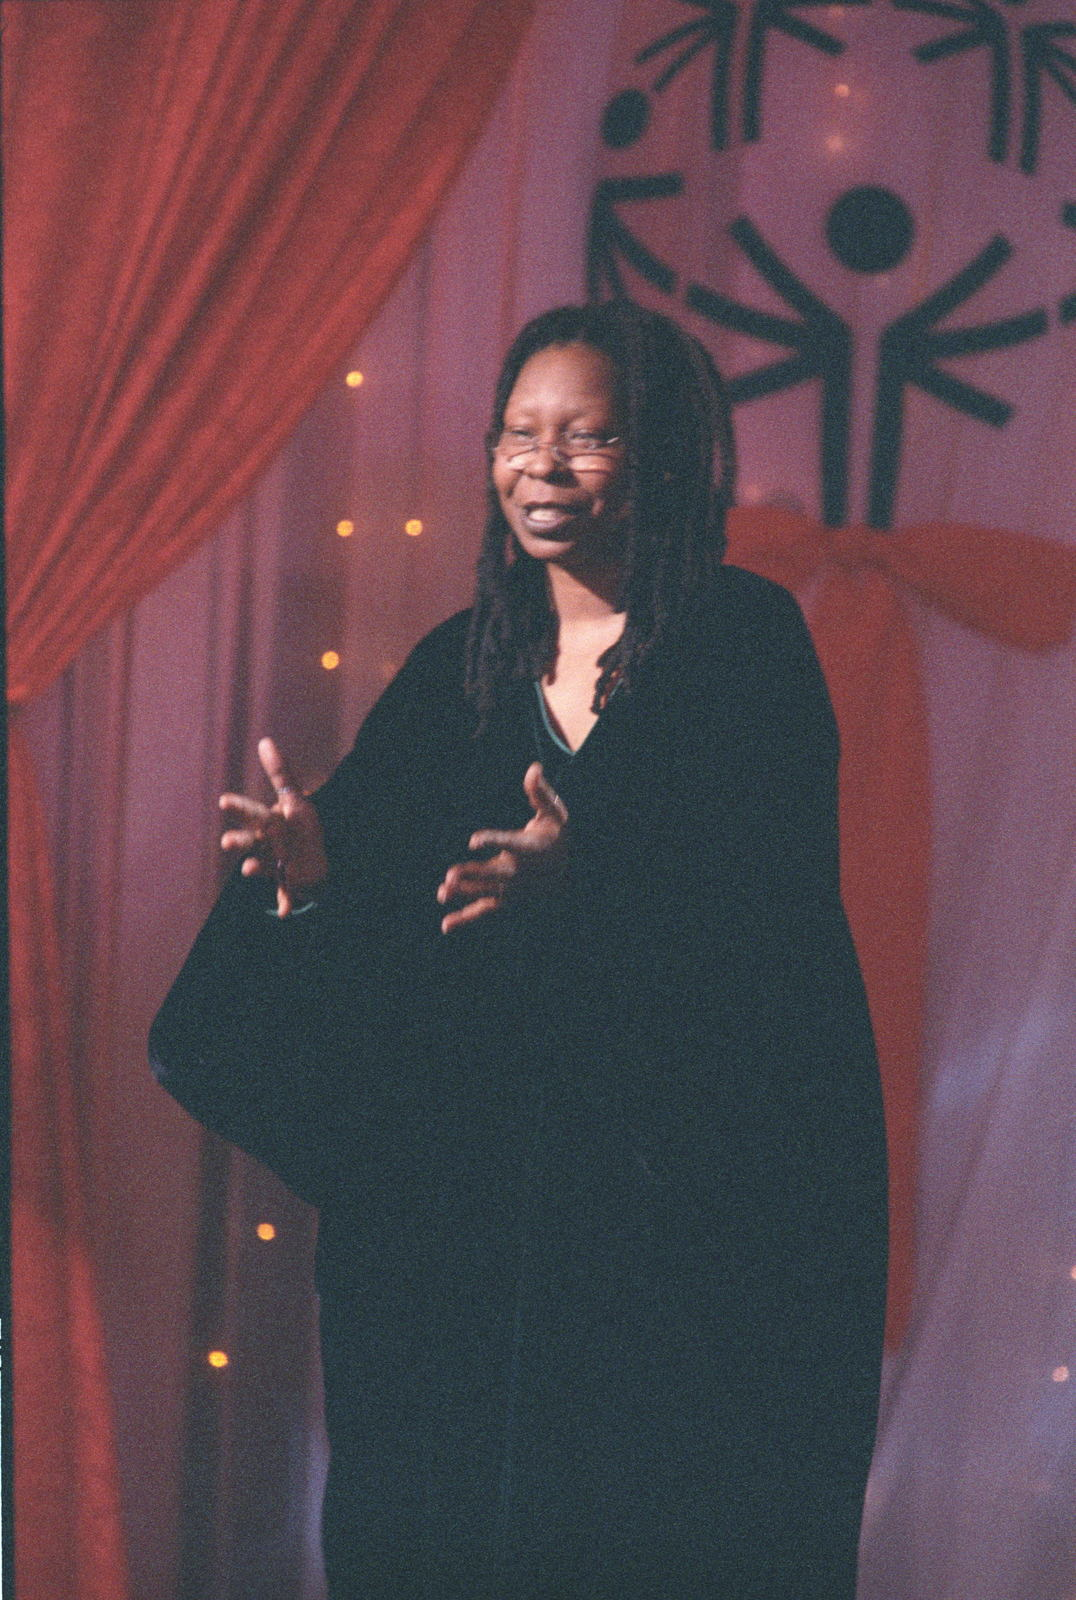 Photograph of Whoopi Goldberg Delivering Remarks at a White House Special  Olympics Dinner - U.S. National Archives Public Domain Image